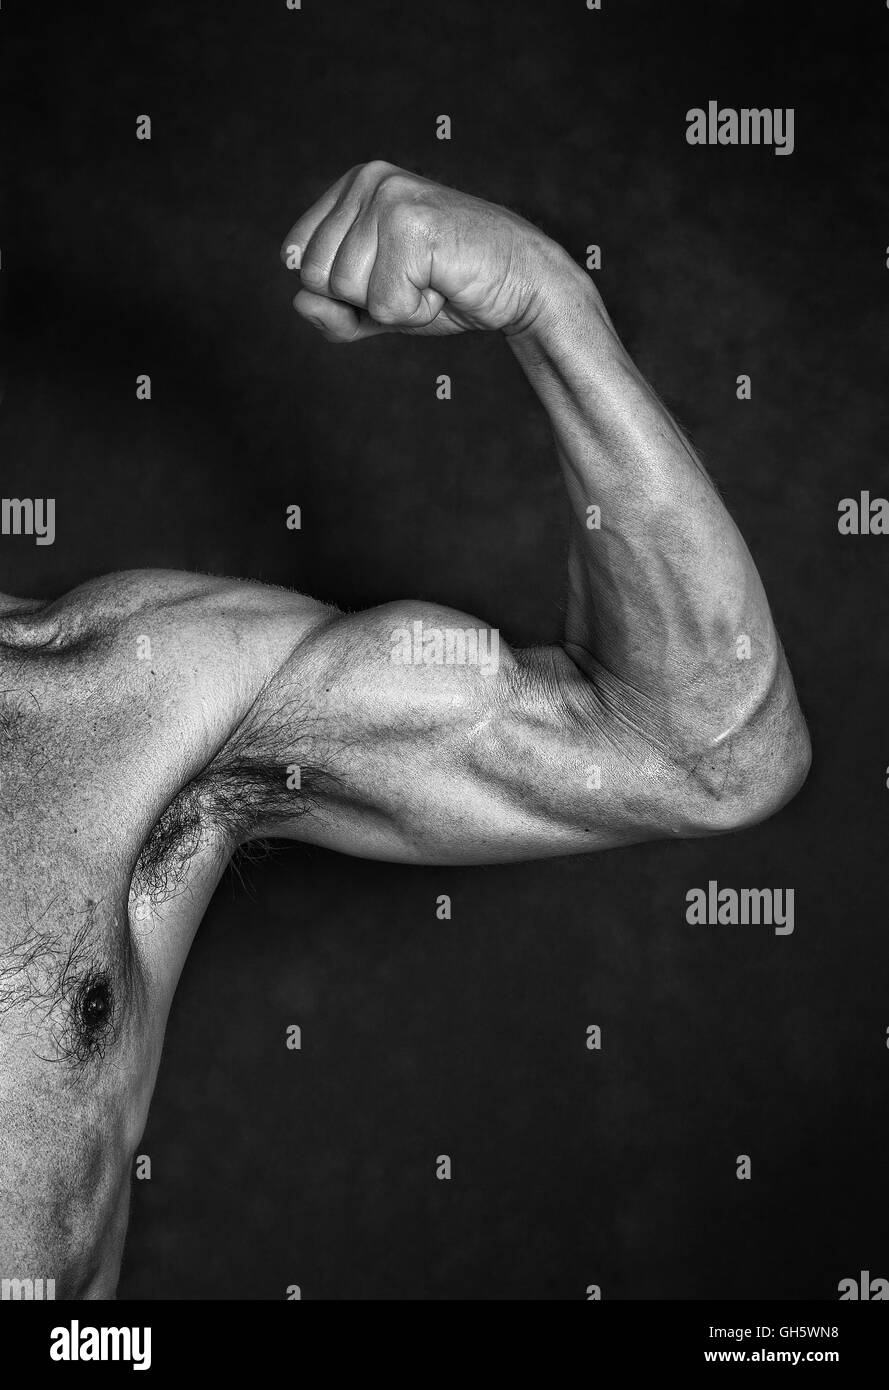 Muscle - Stock Image